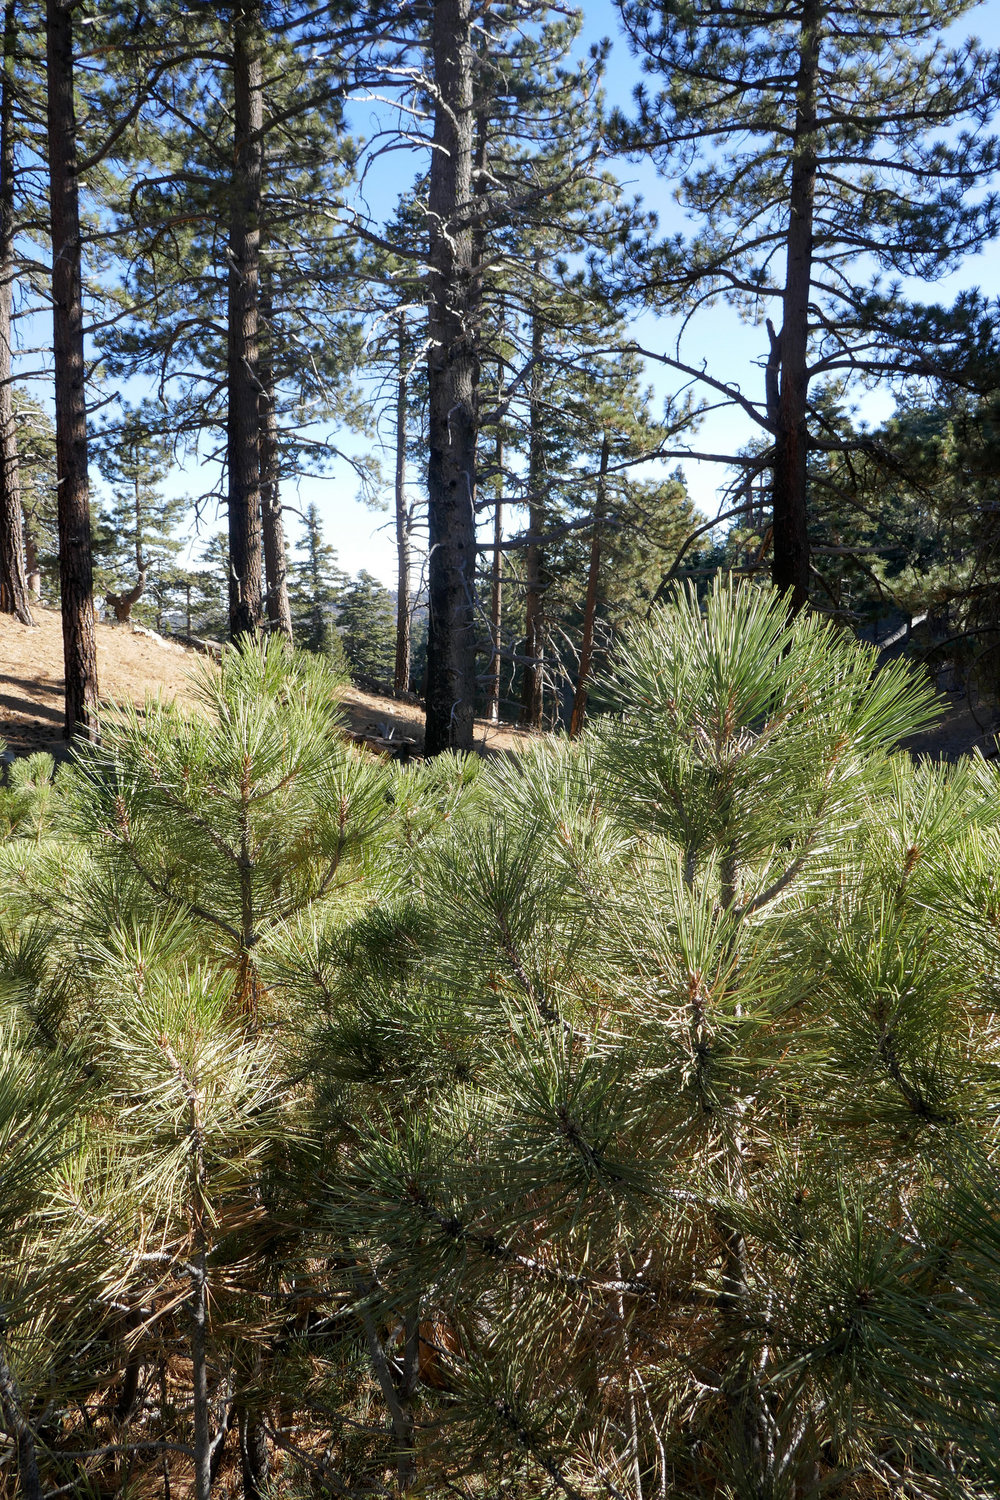 Pine grove near the Grassy Hollow visitor center.